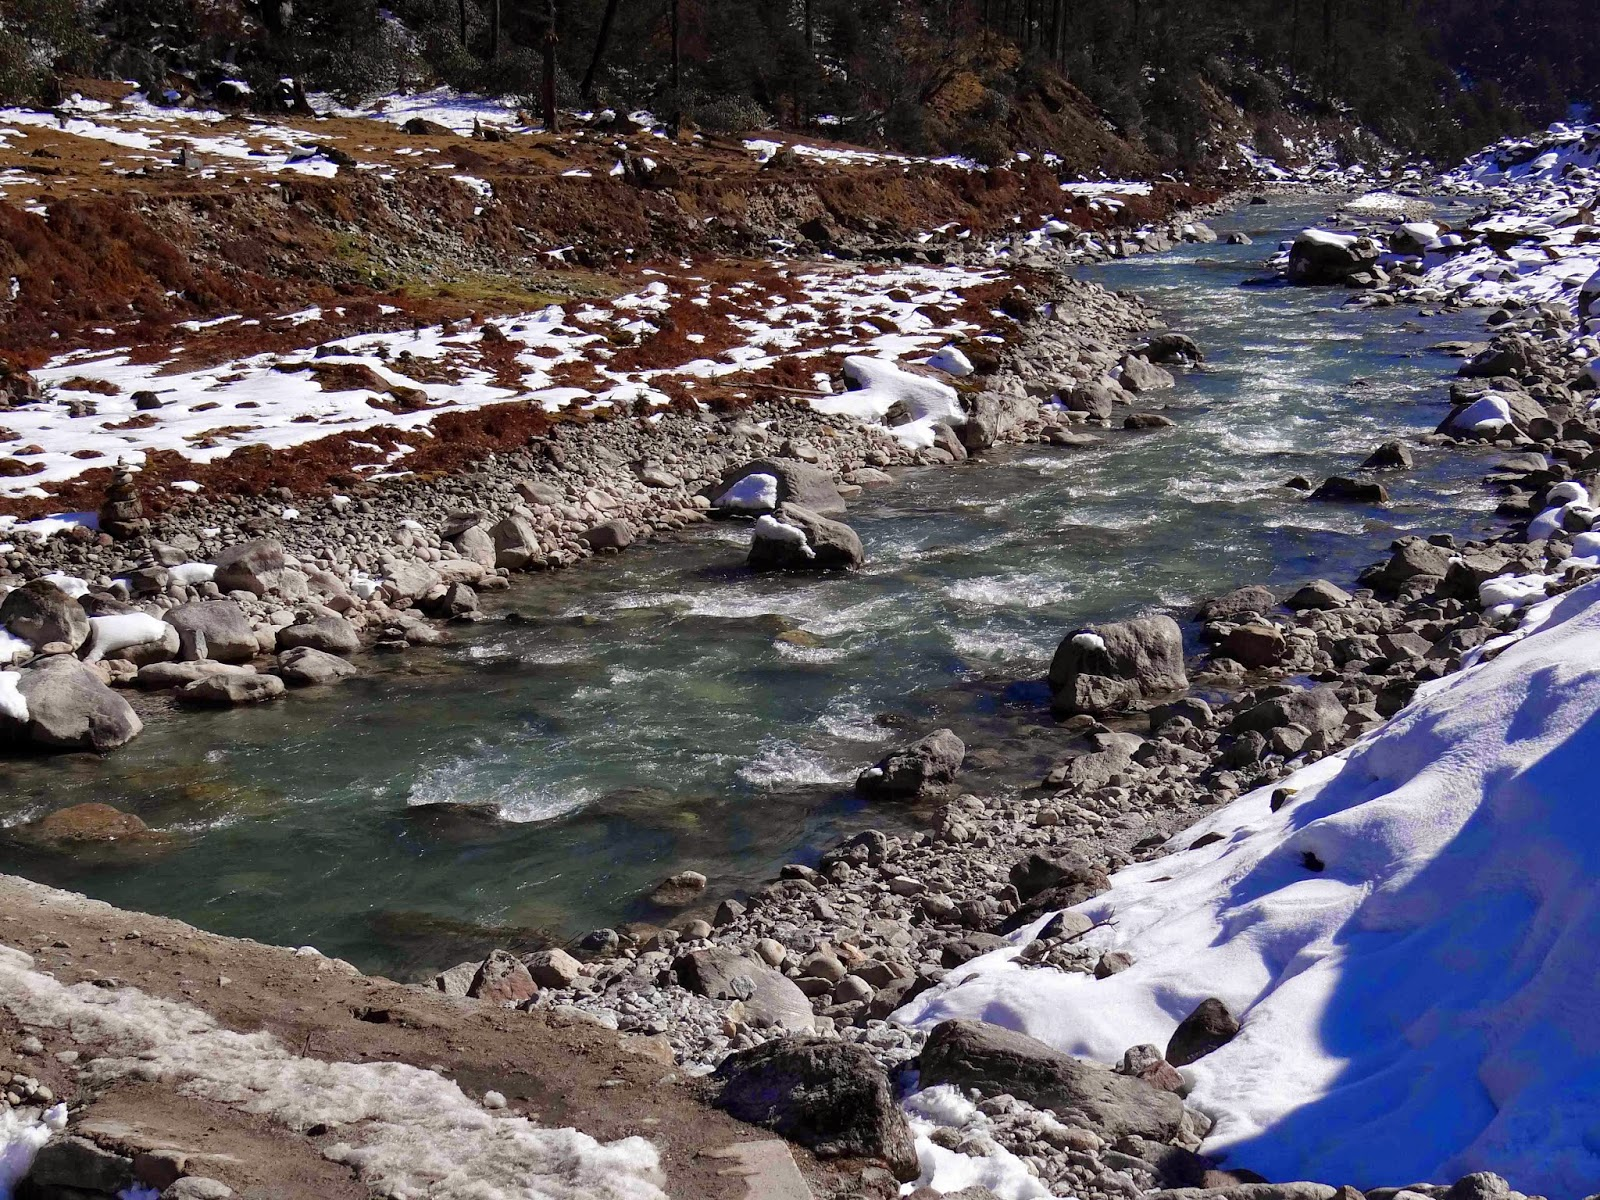 Yumthang Hot Springs Yumthang Valley, Travel Another India: Juggernaut of Happpiness - Sikkim Diaries